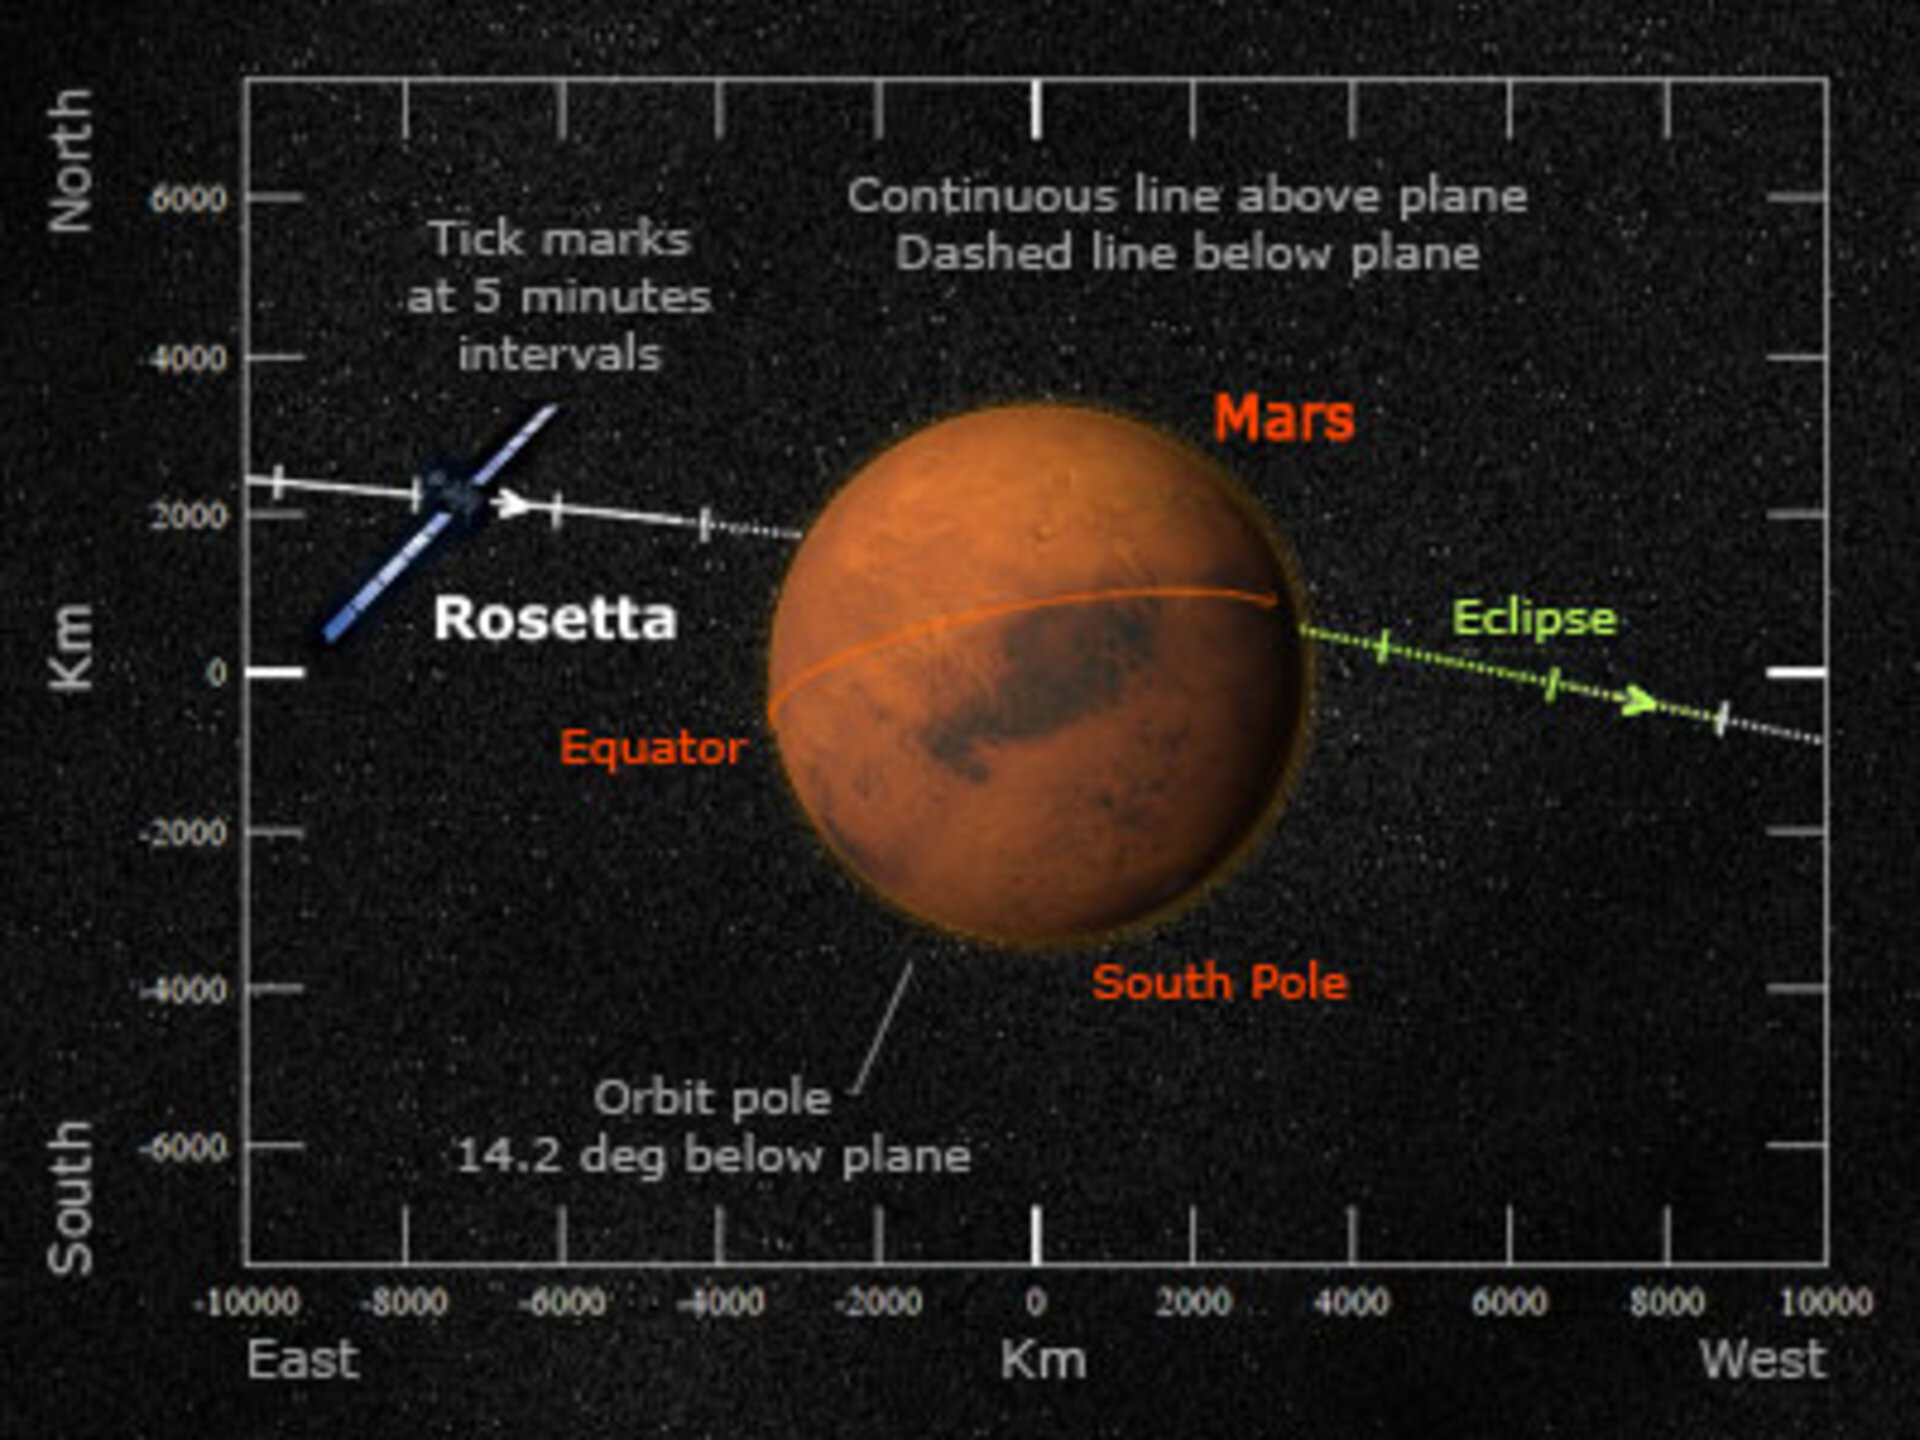 View from Earth: Rosetta passing Mars